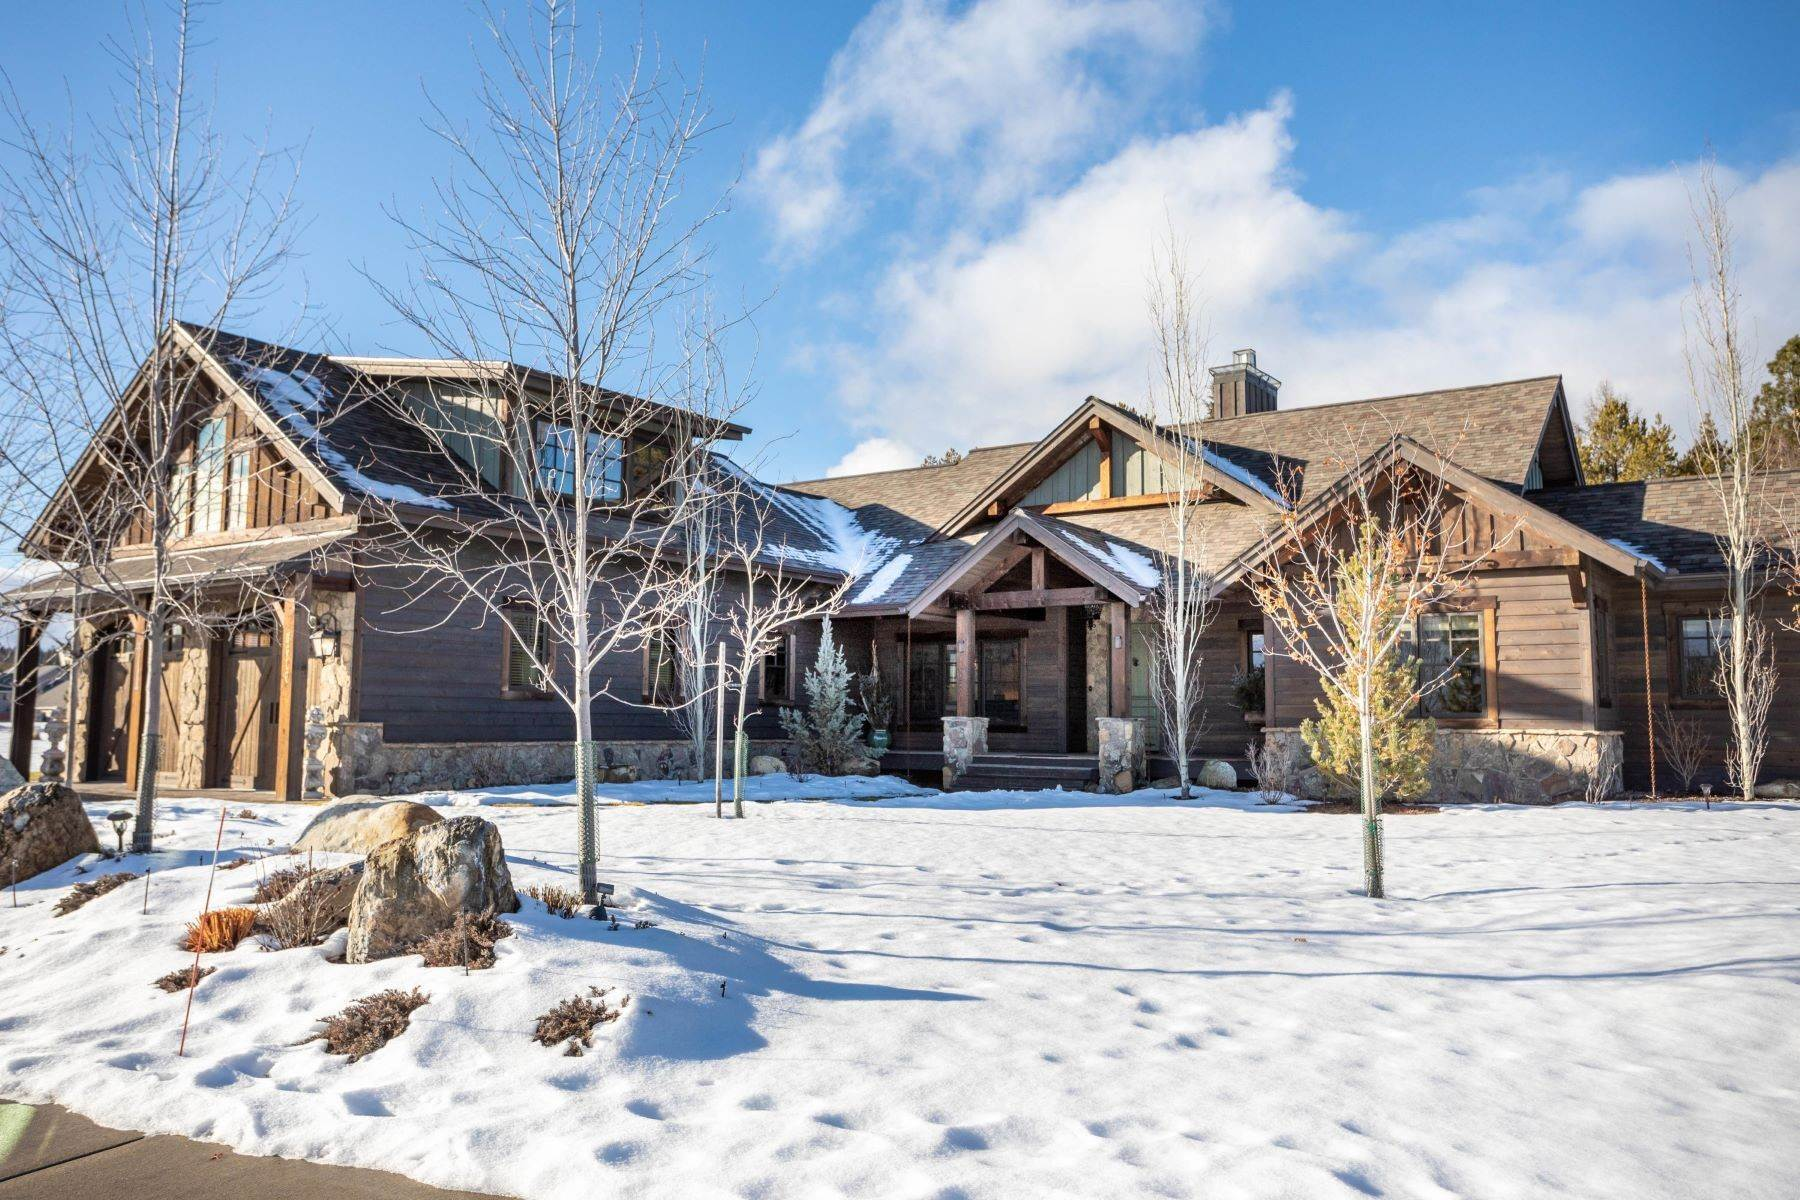 Single Family Homes for Sale at Along the Whitefish River 3010 River Lakes Drive Whitefish, Montana 59937 United States